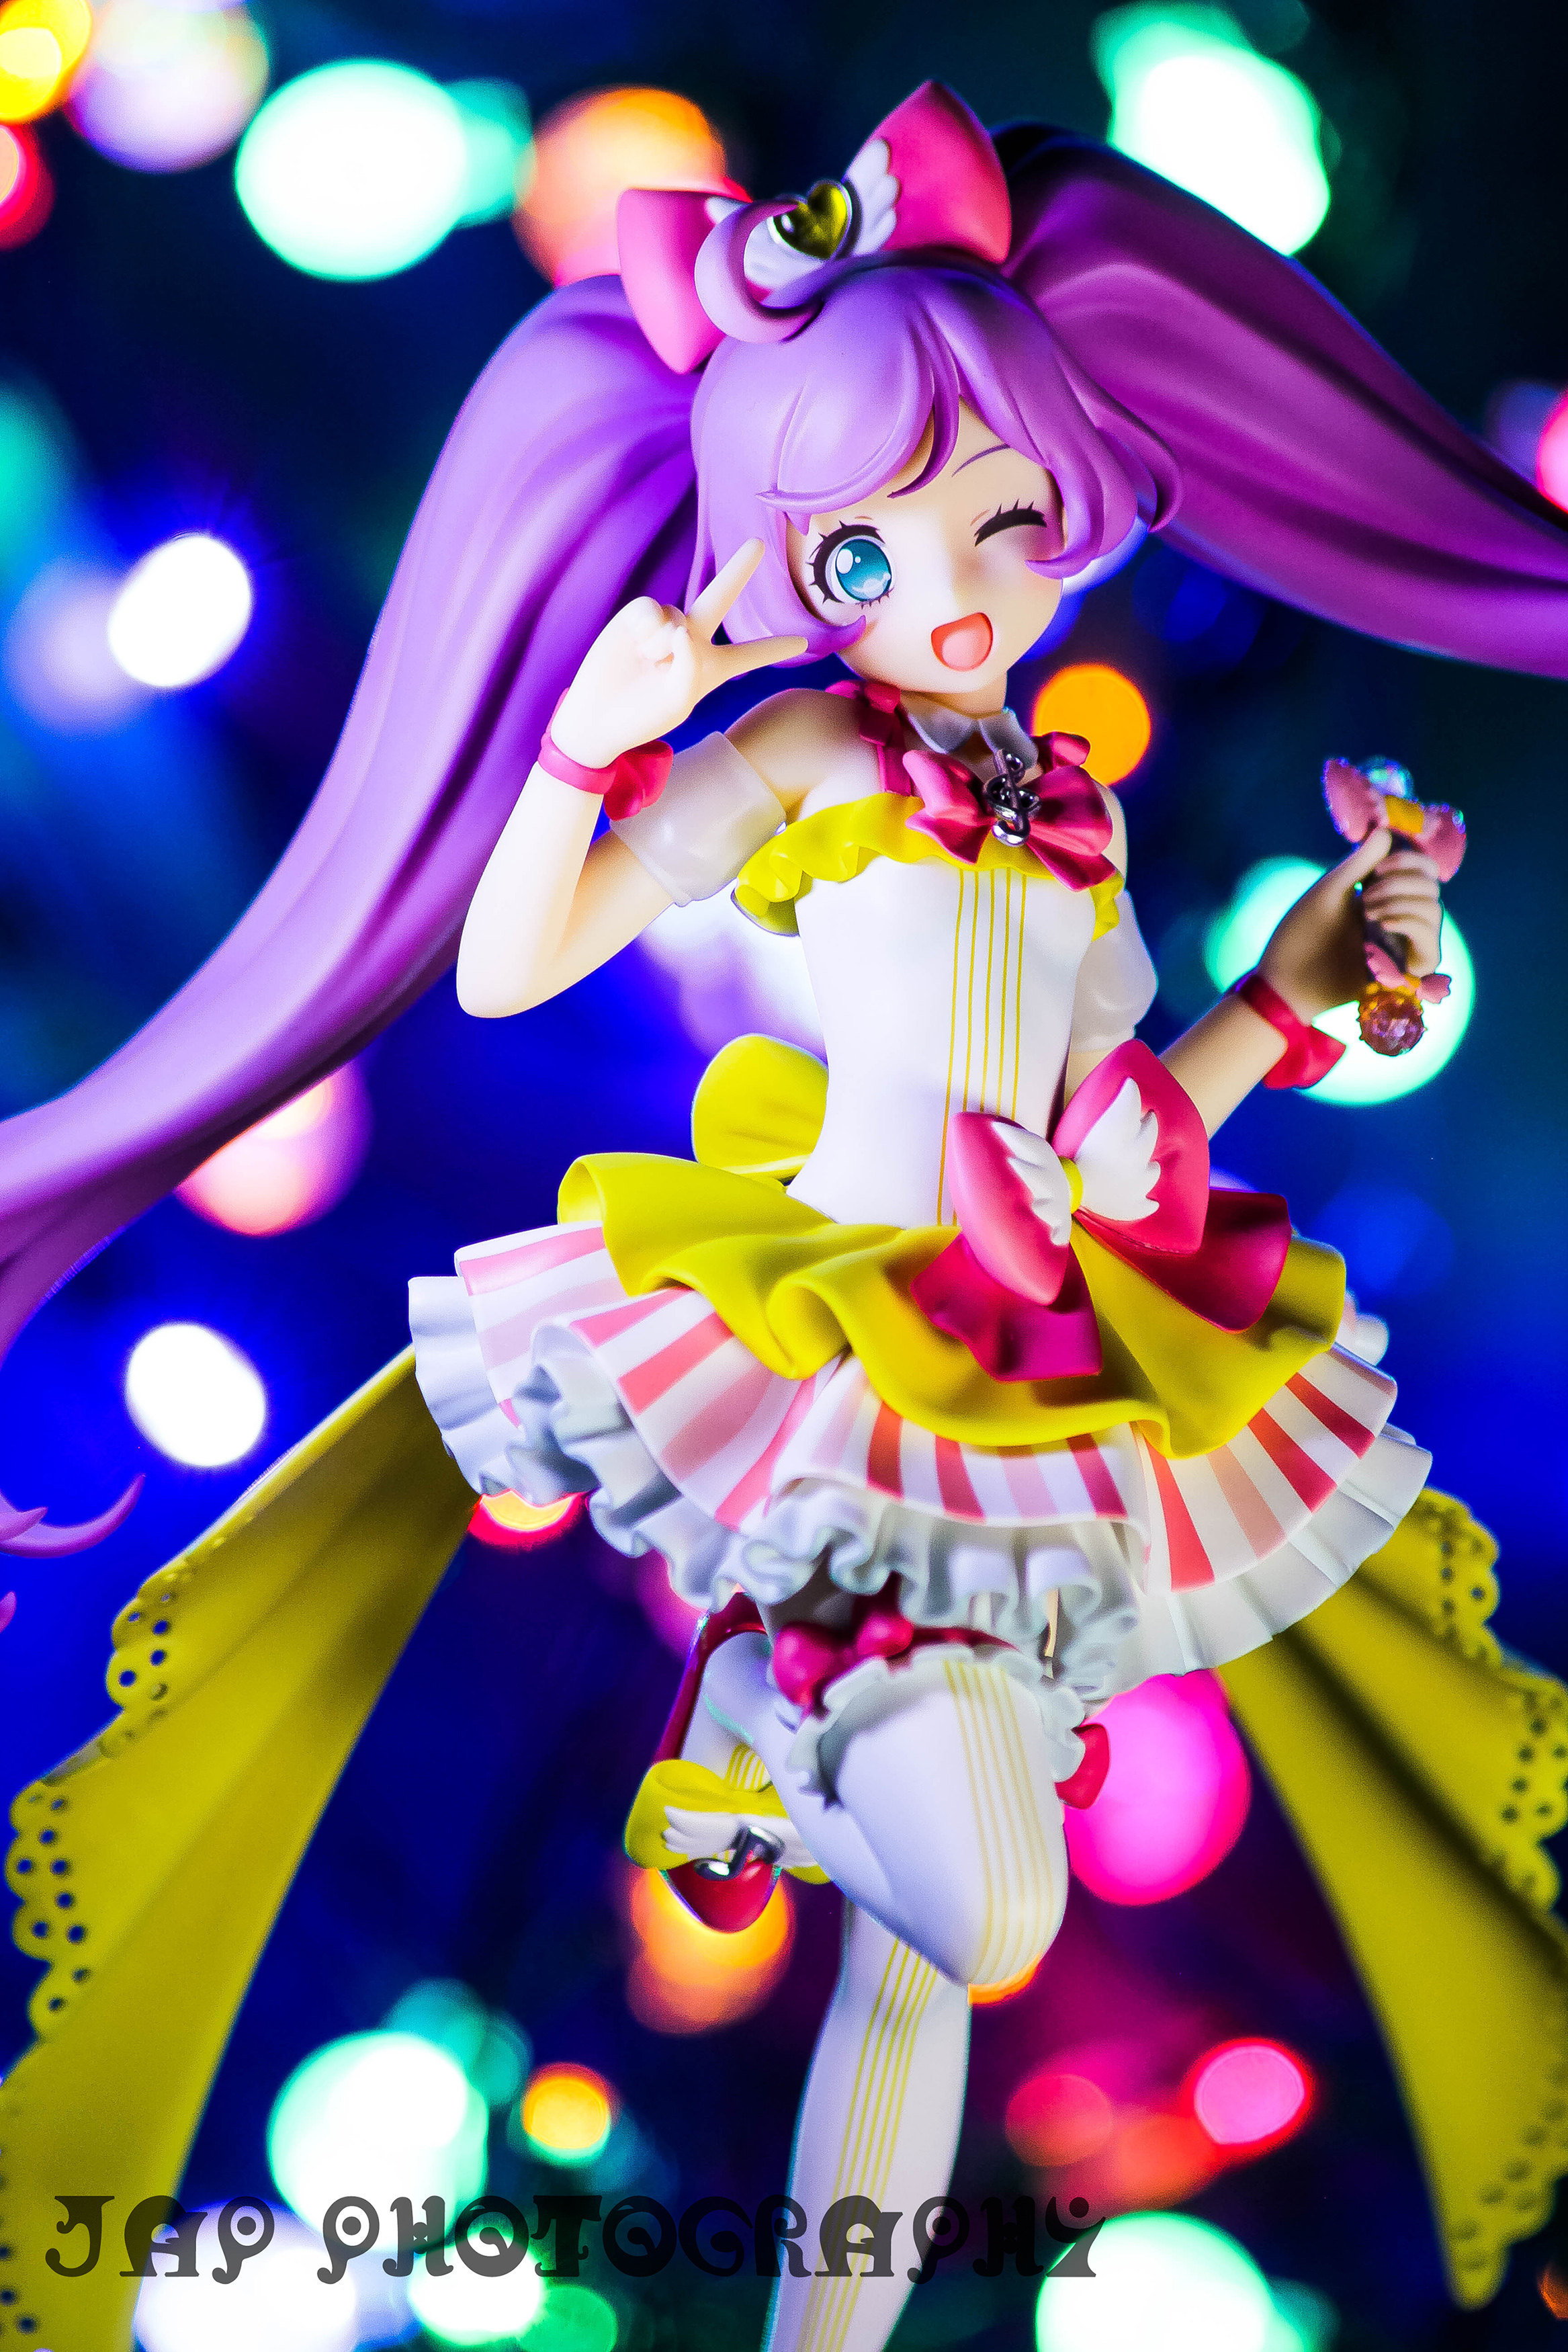 ribbon wink cyan_eyes female purple_hair good_smile_company peace_sign 1/7 takara_tomy_a.r.t.s female_figure urakawa_akinori syn_sophia pripara manaka_lala akaneya_himika kashikoma